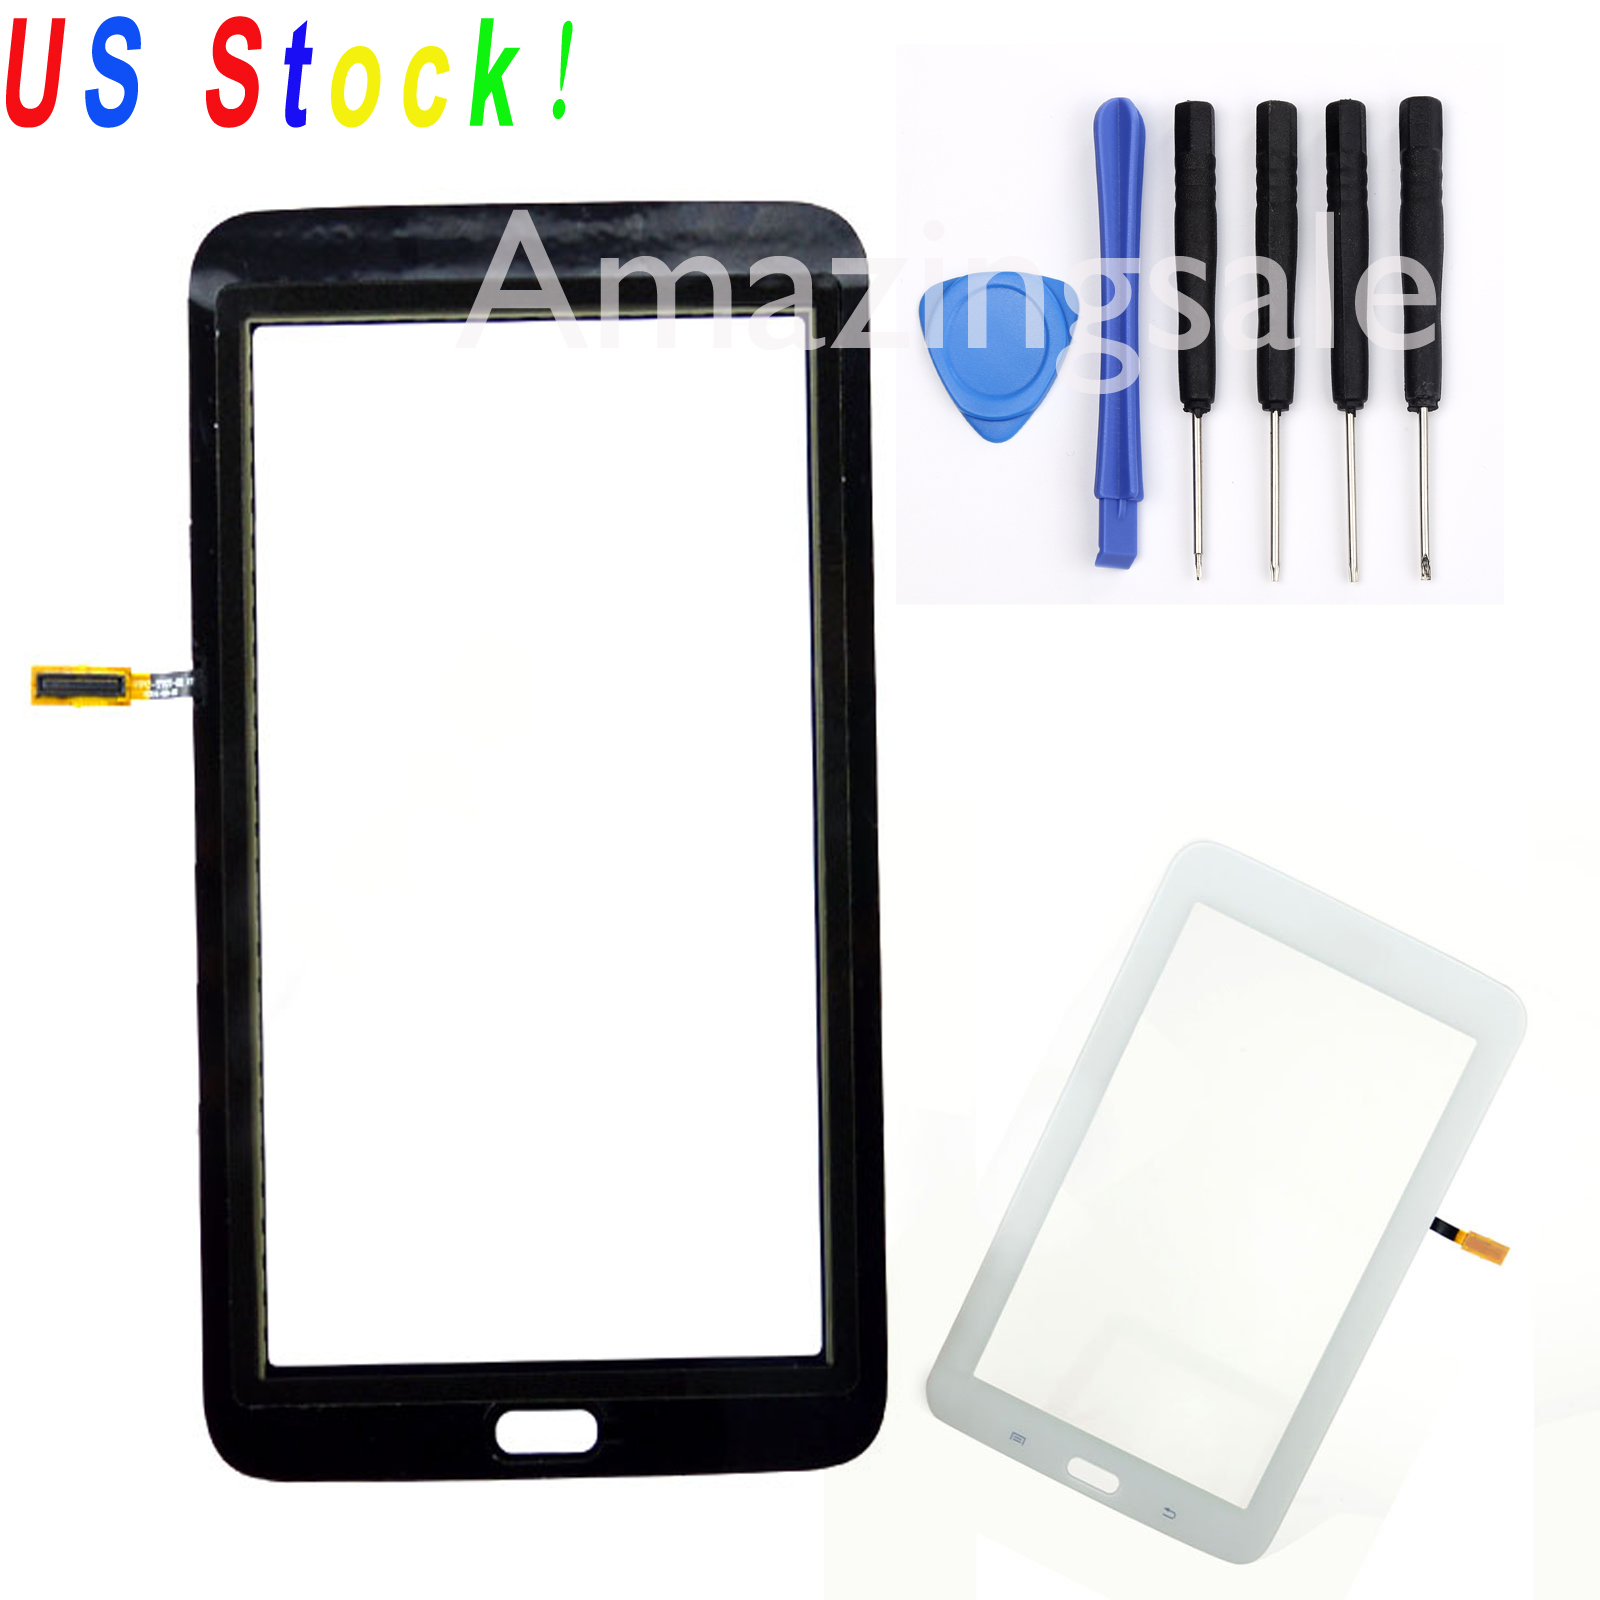 white for samsung galaxy tab 3 lite sm t110 7 0 touch screen digitizer parts us ebay. Black Bedroom Furniture Sets. Home Design Ideas